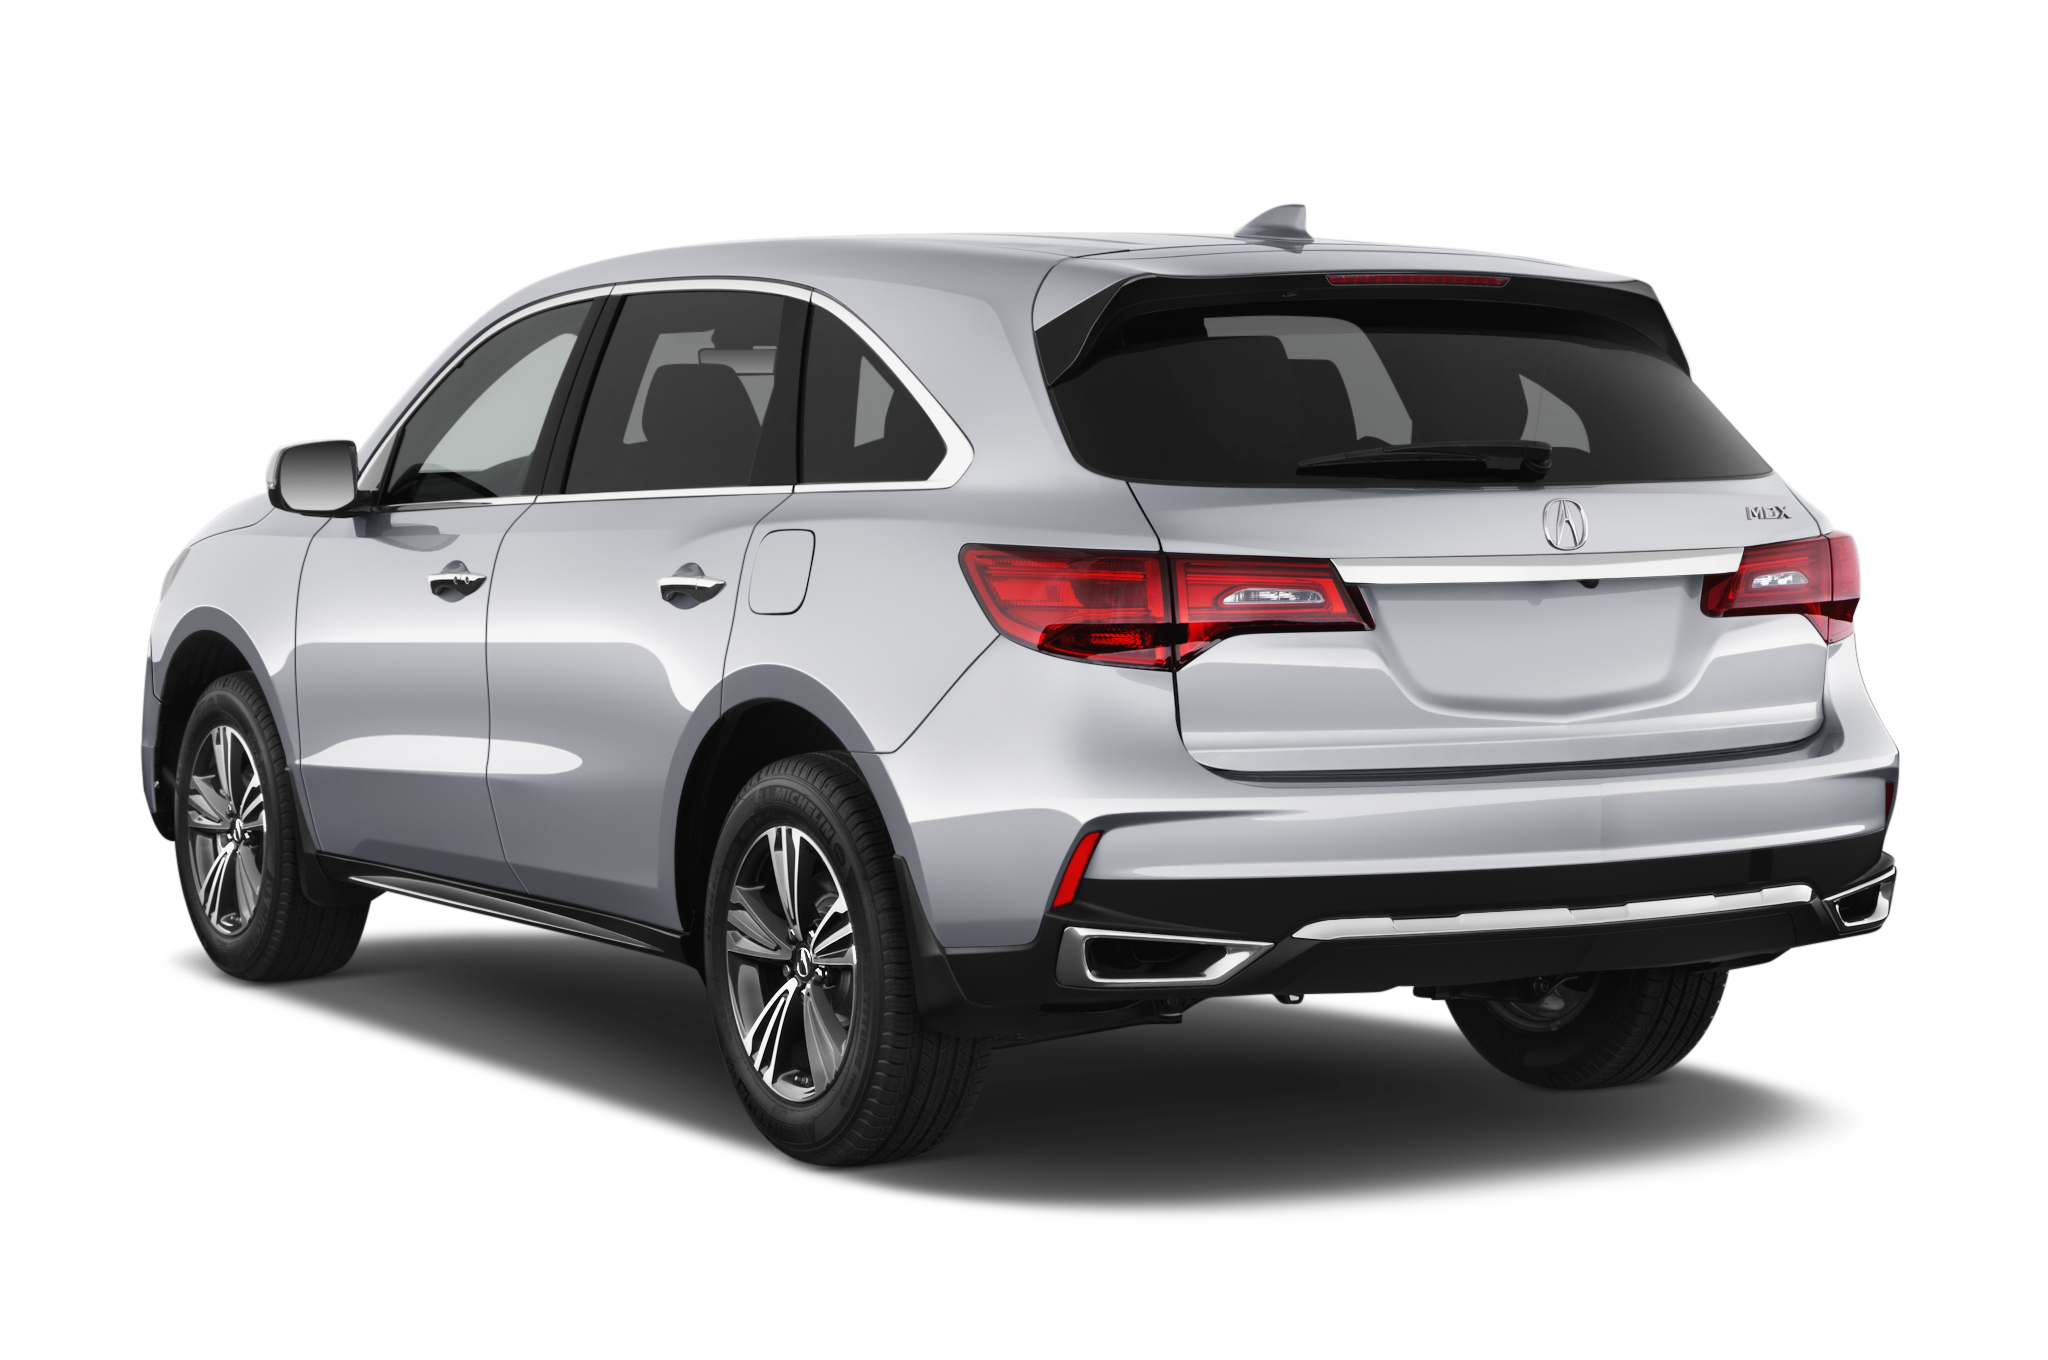 2017 acura mdx debuts new nose sport hybrid model for new york automobile magazine. Black Bedroom Furniture Sets. Home Design Ideas